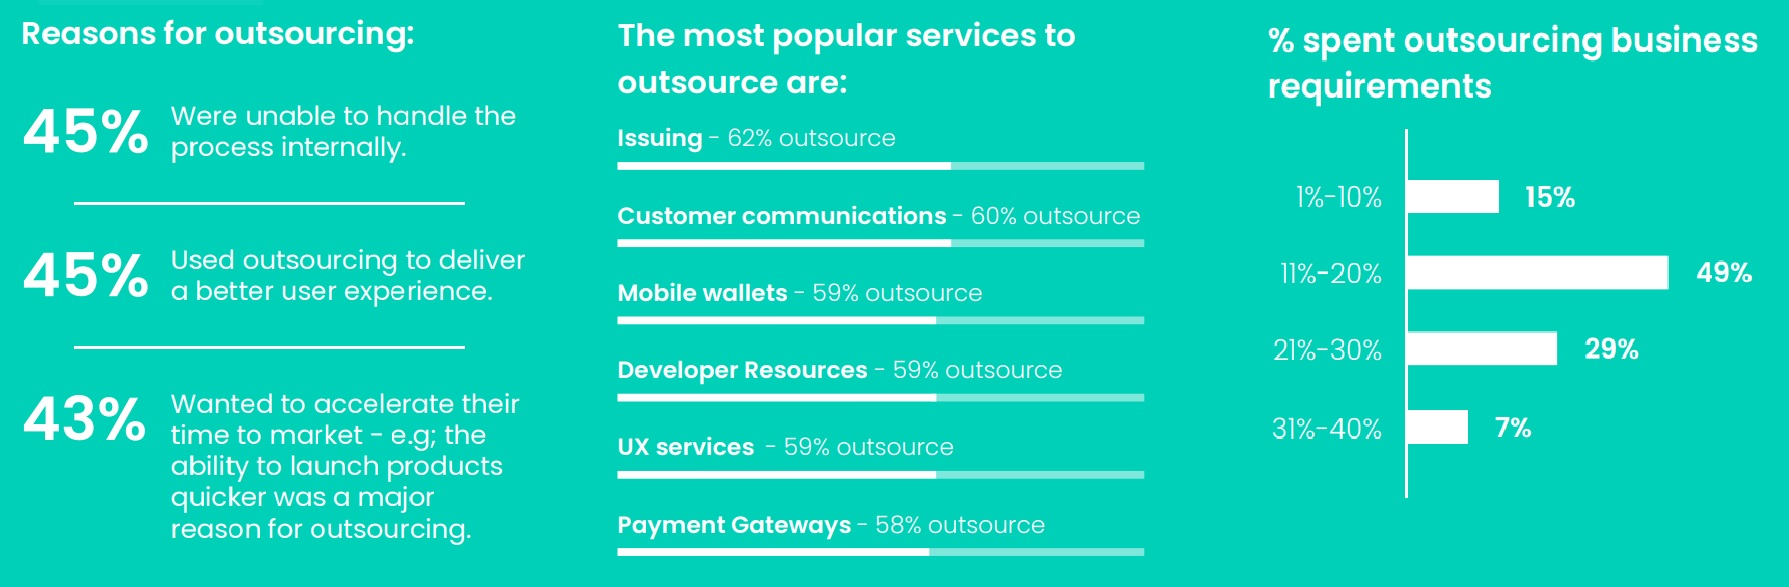 Reasons for fintechs to outsource